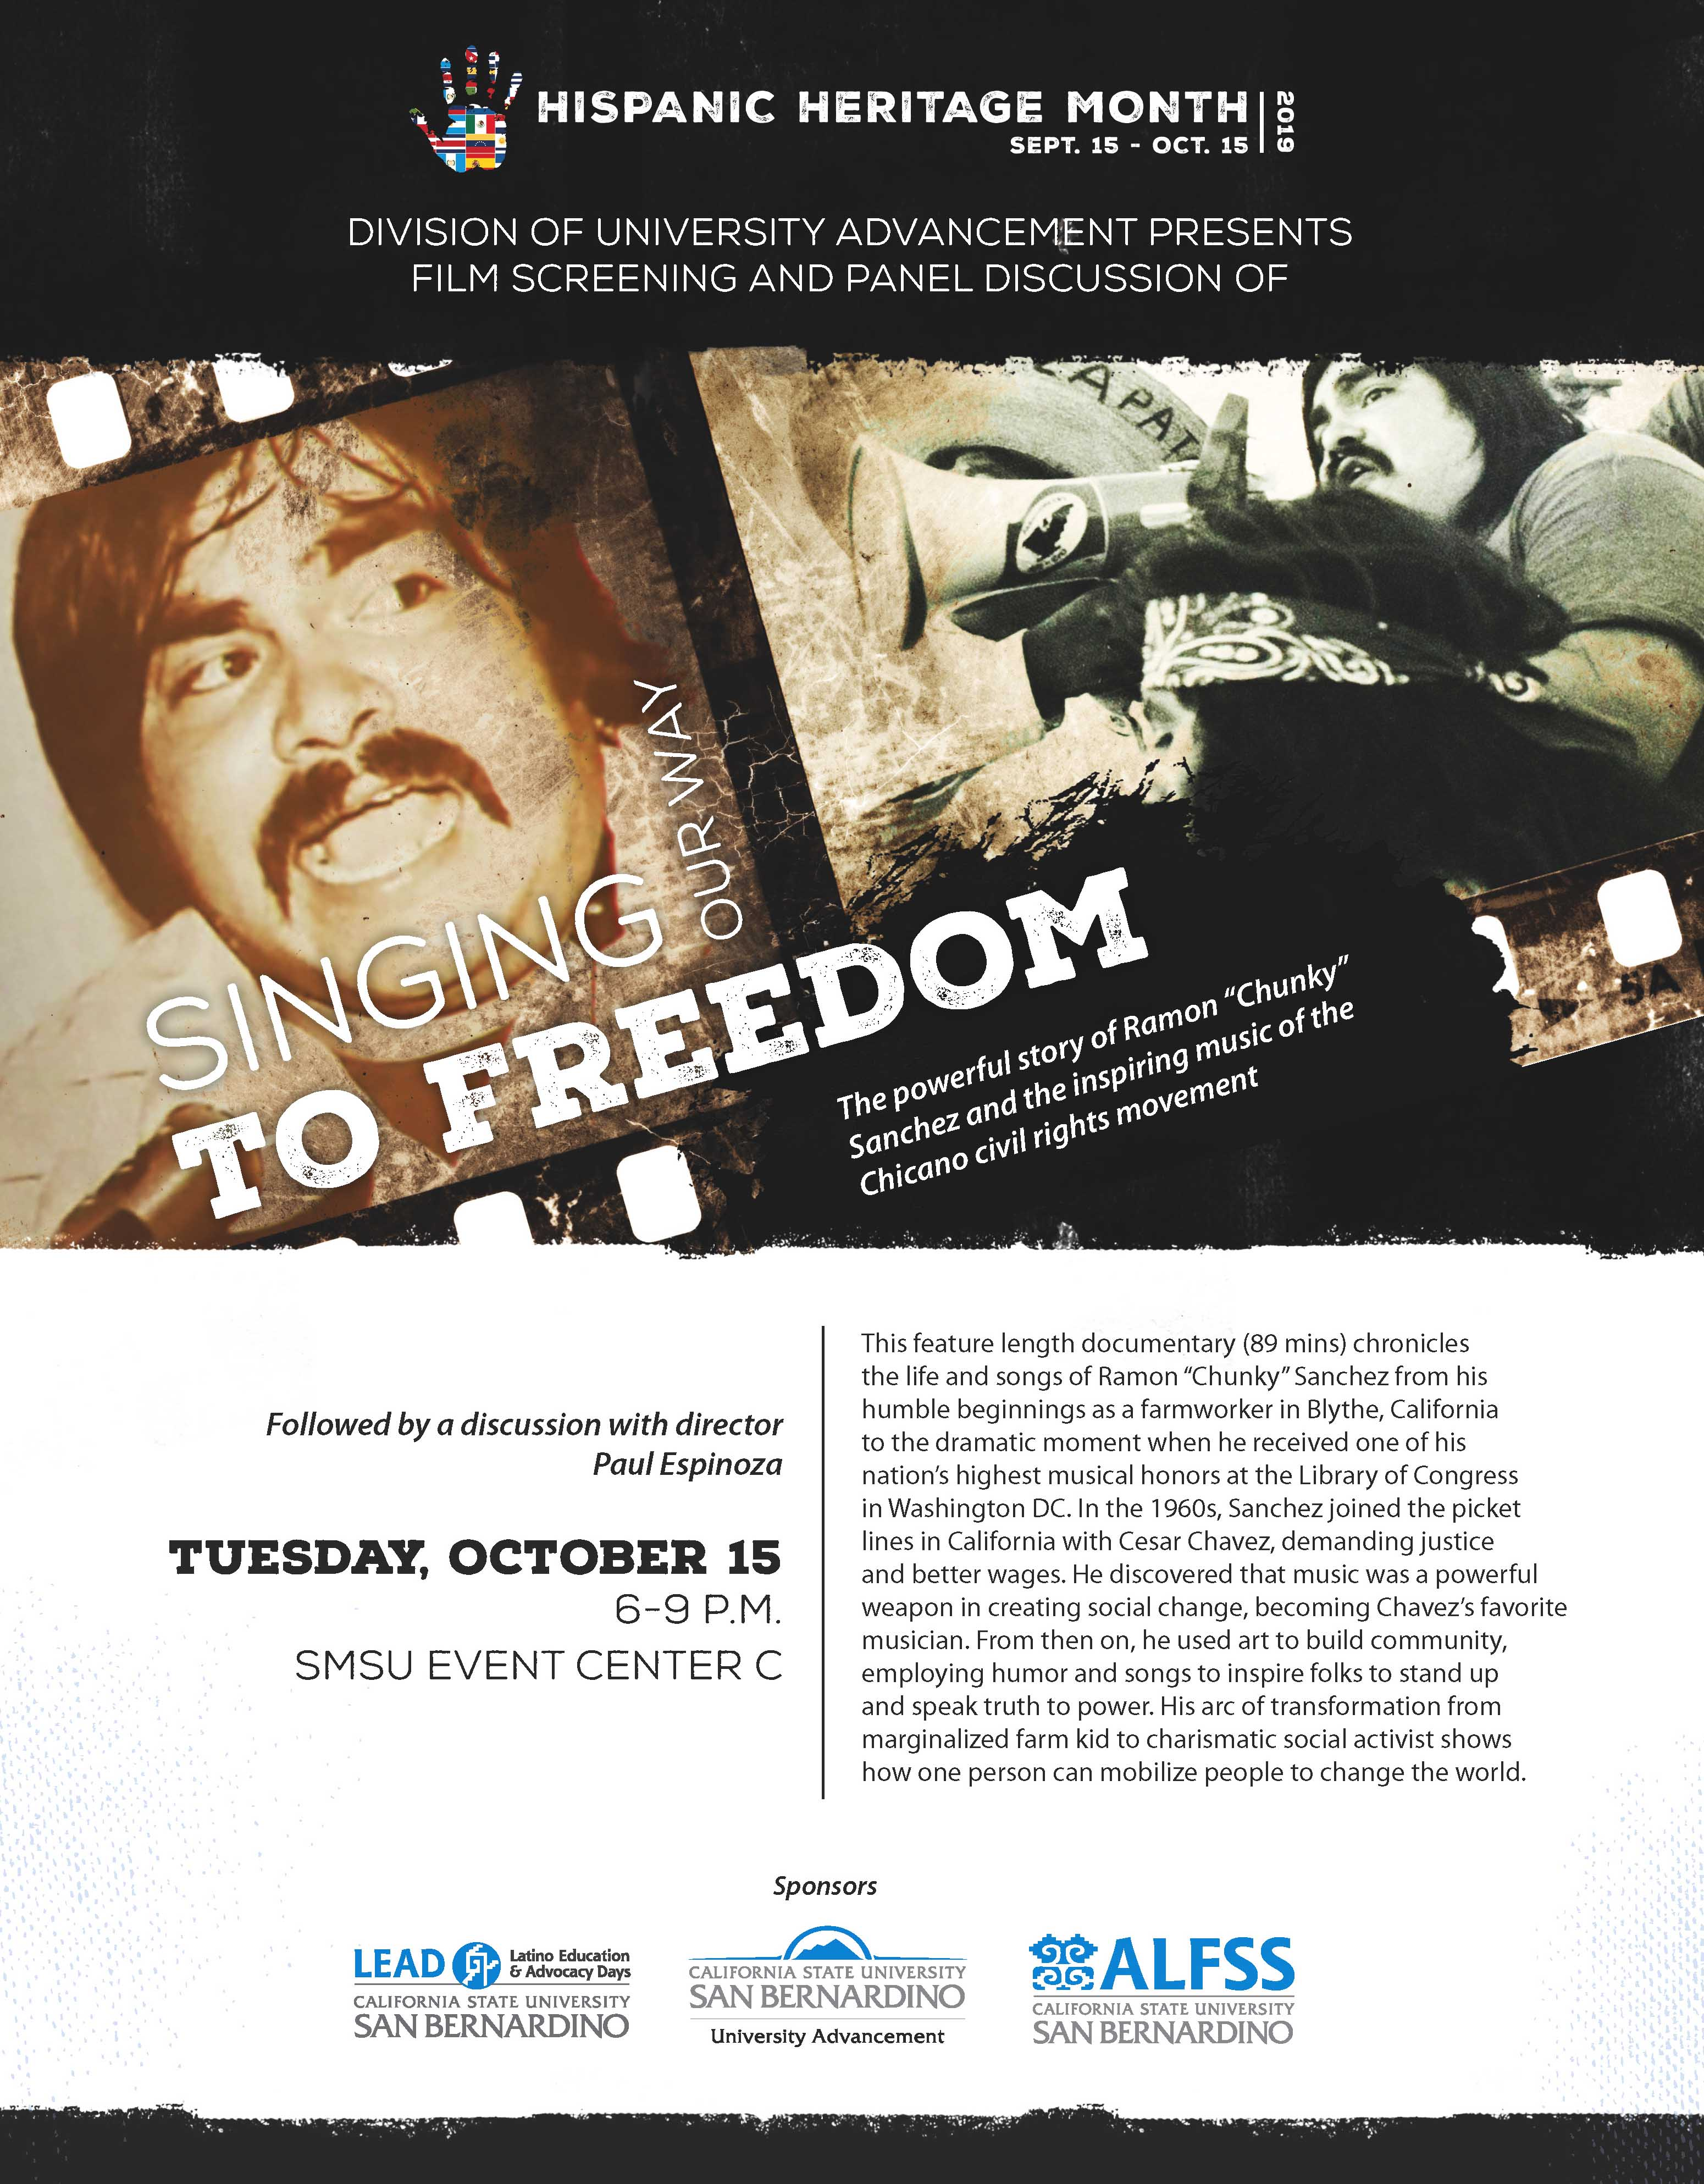 Documentary 'Singing Our Way to Freedom' to be shown Oct. 15 at CSUSB (flier)